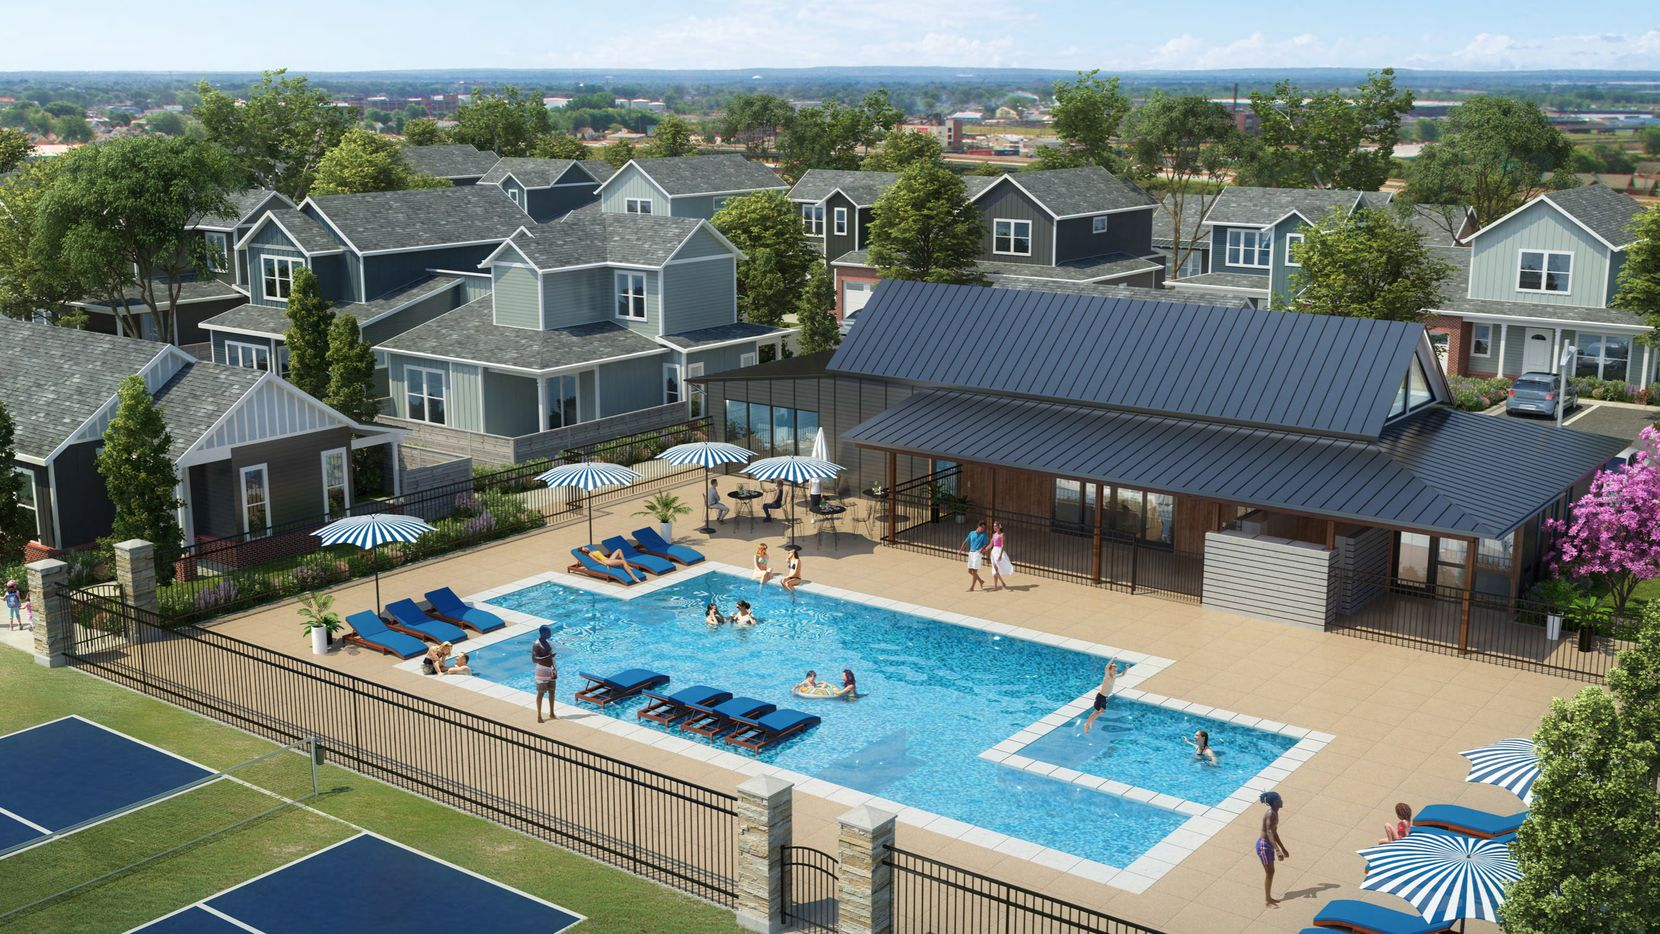 The planned parcHAUS community will contain 134 rental units.